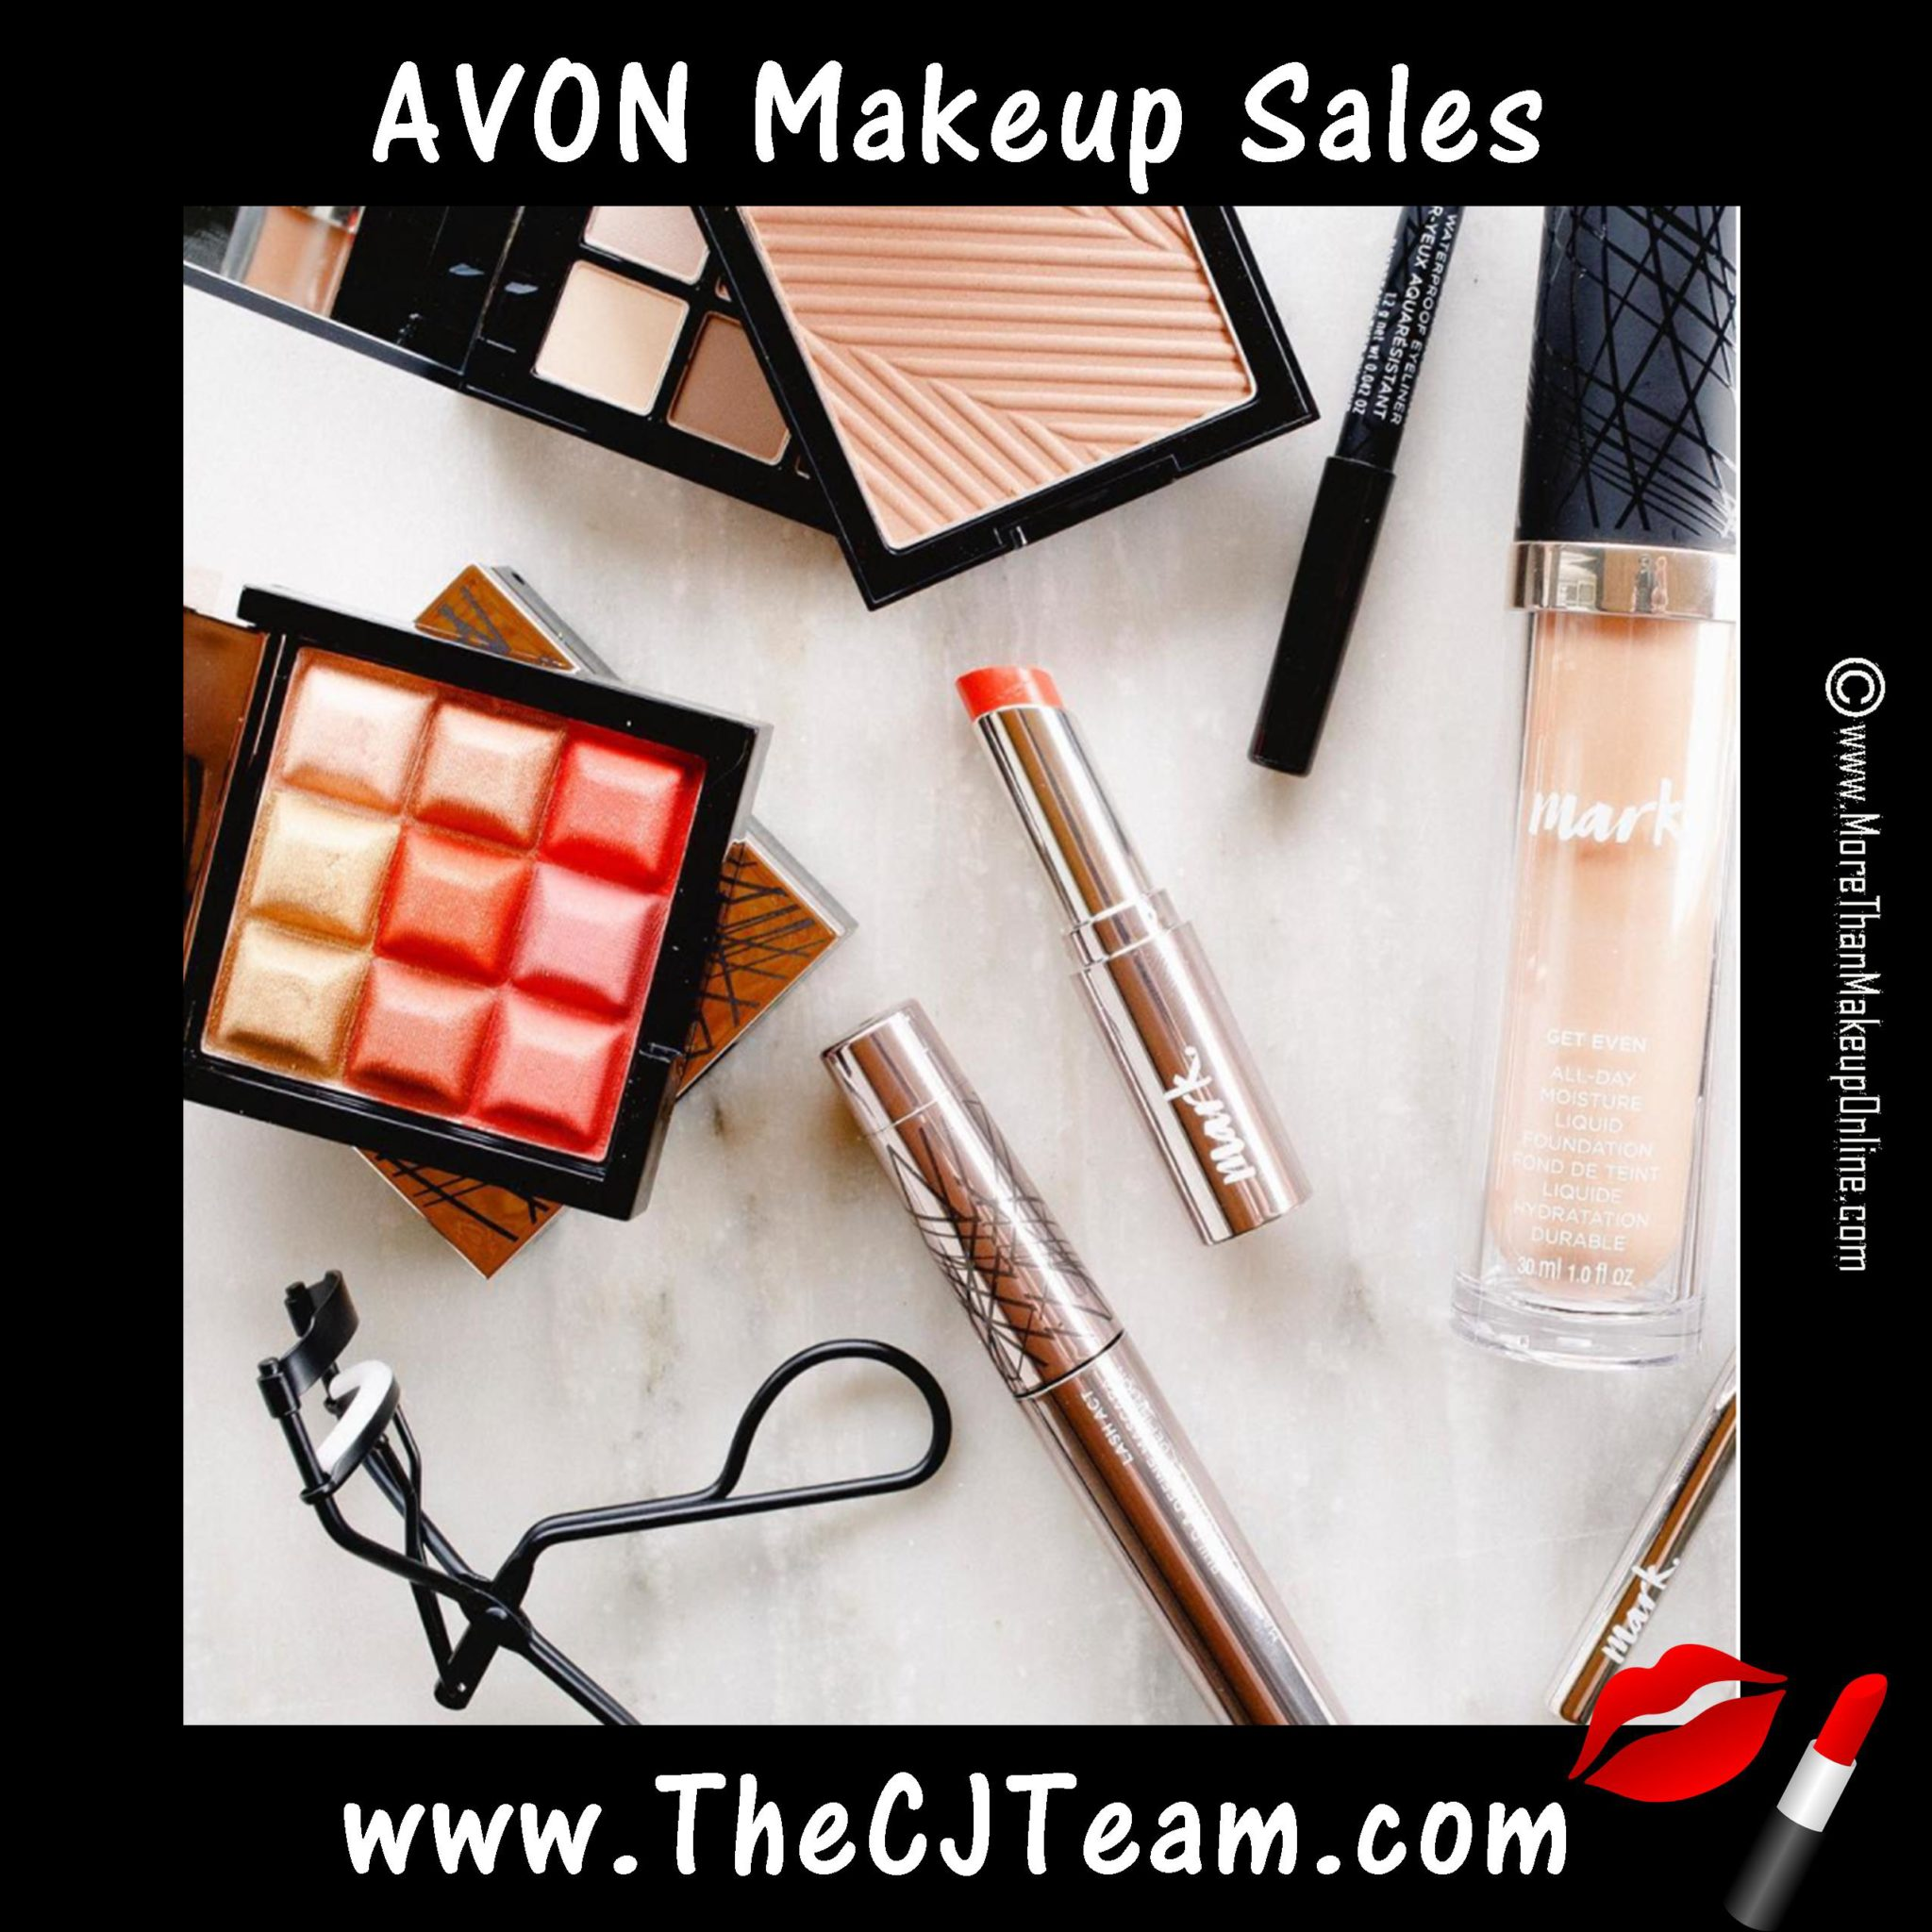 Avon Campaign 15 Makeup Sales - More Than Makeup Online